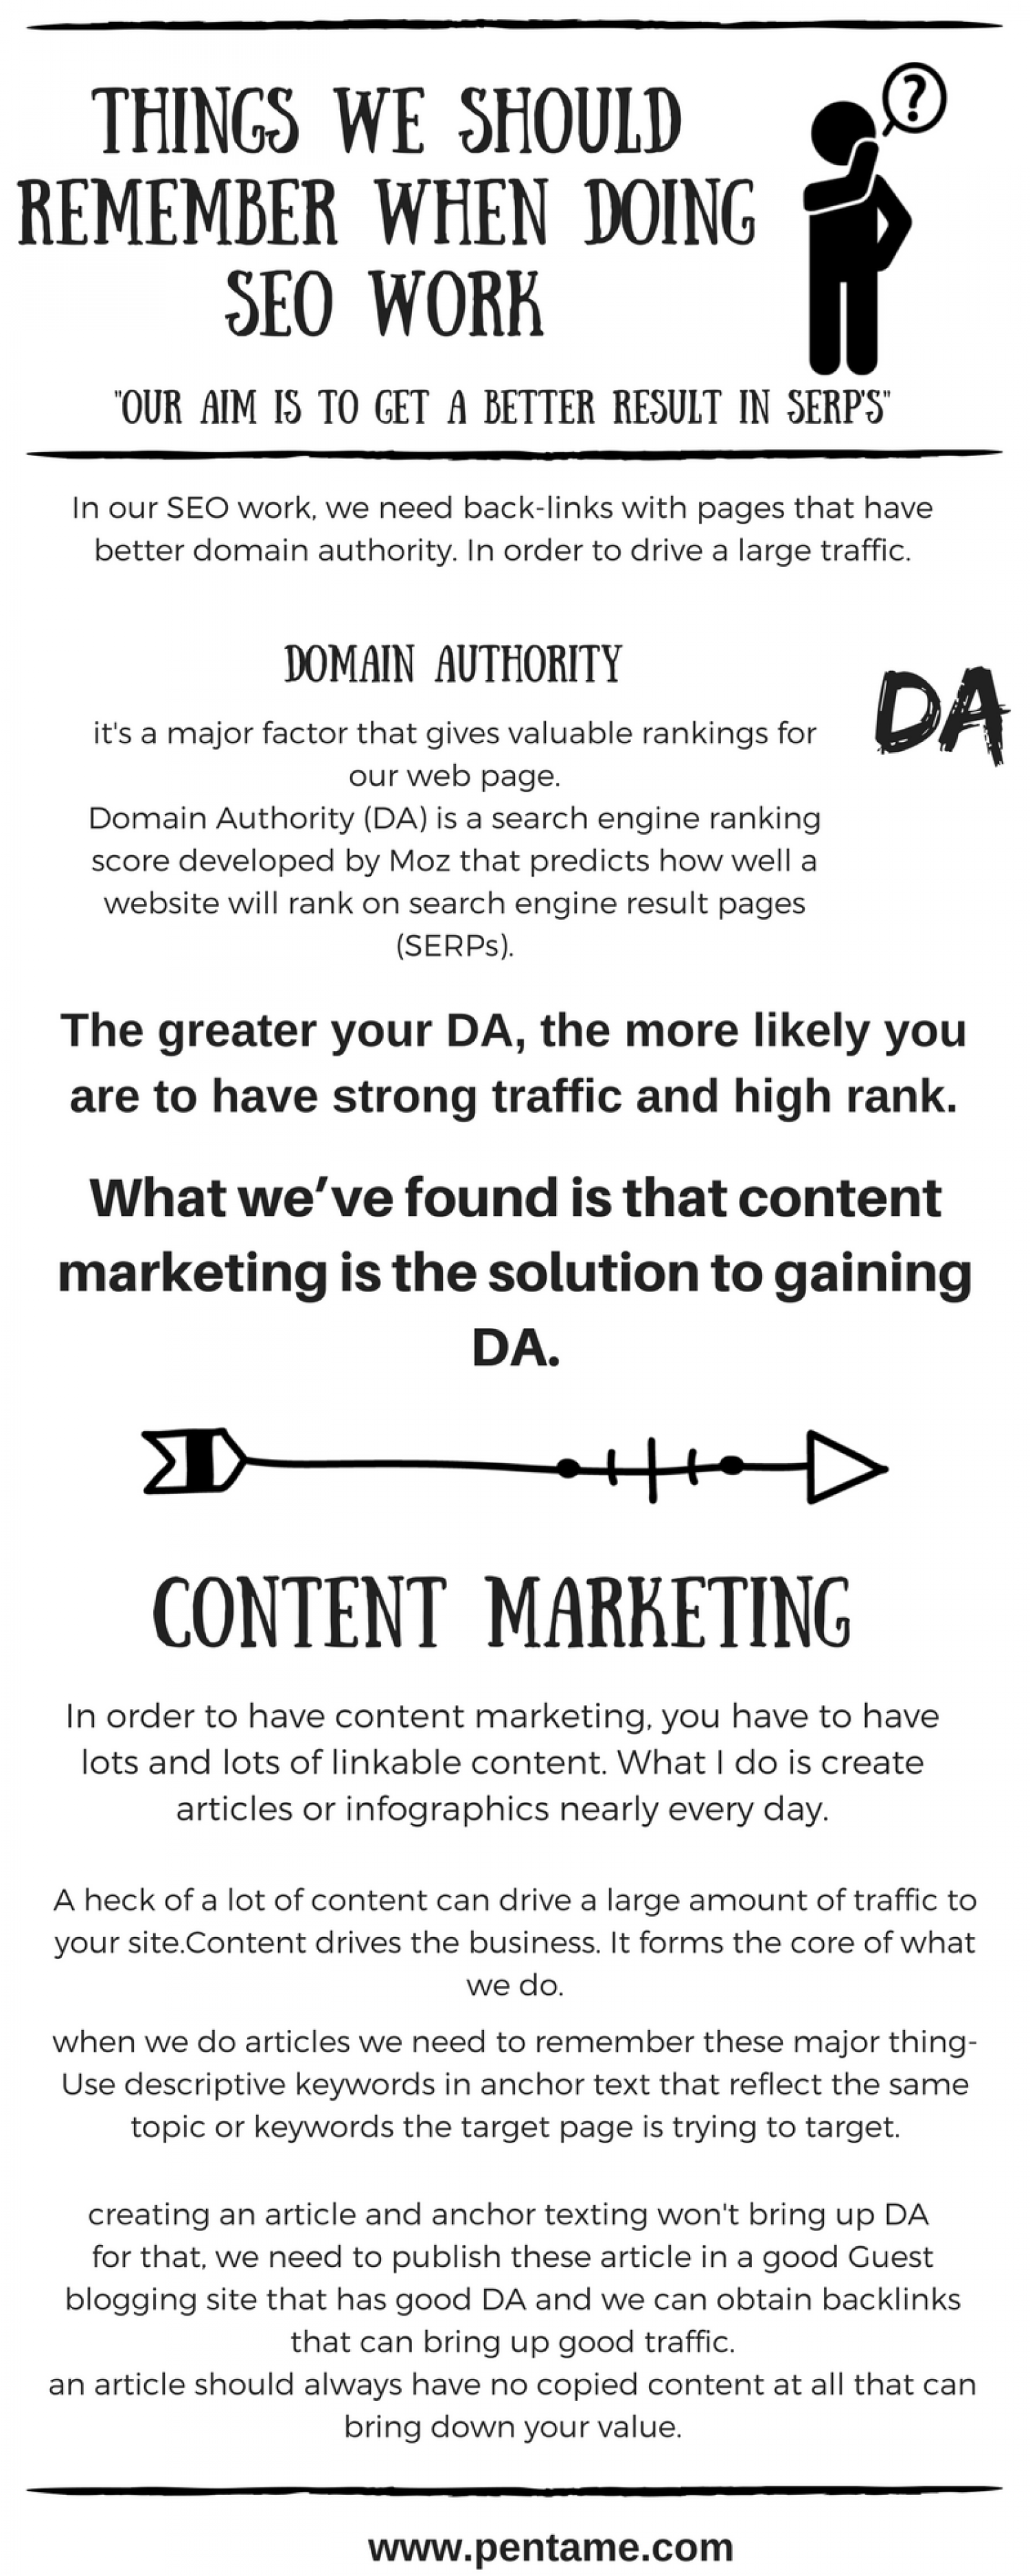 Things we should remember while doing SEO work Infographic